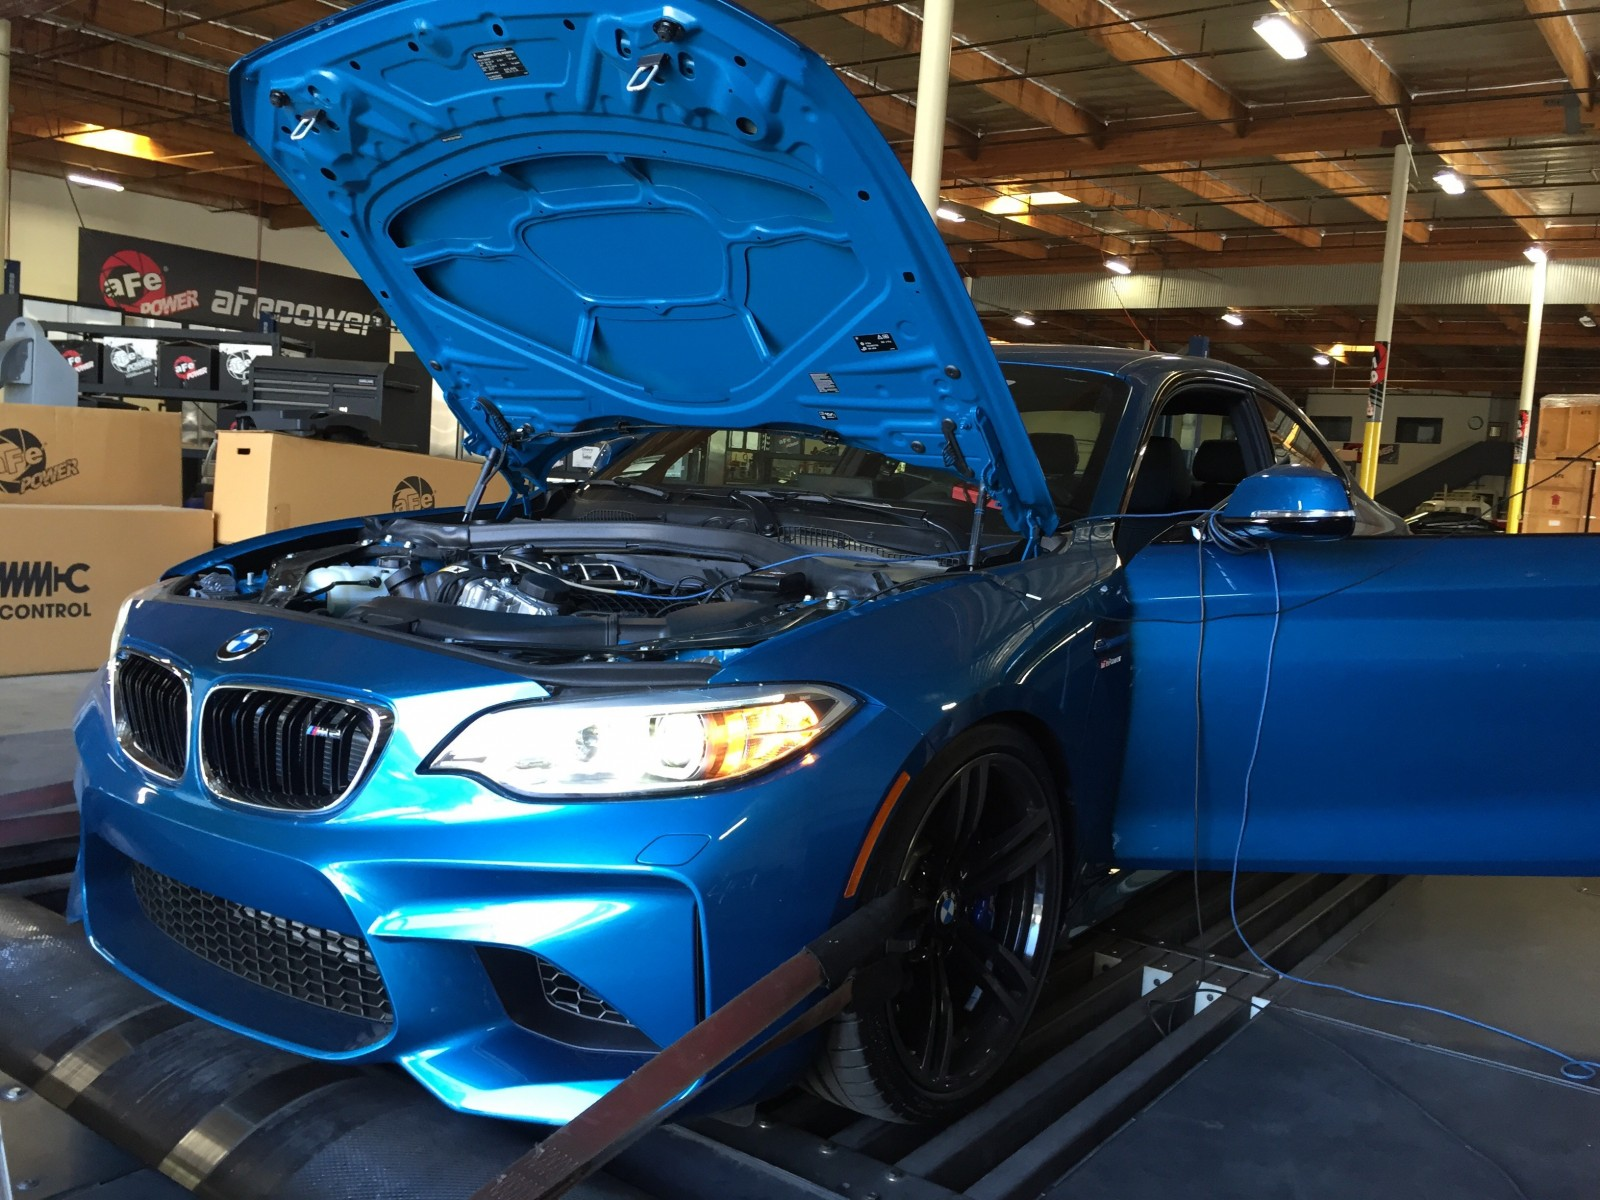 hight resolution of the bmw m2 is the automaker s answer to audi and mercedes benz in the premium sport compact segment the 2016 bmw m2 is a wolf in sheep s clothing as it